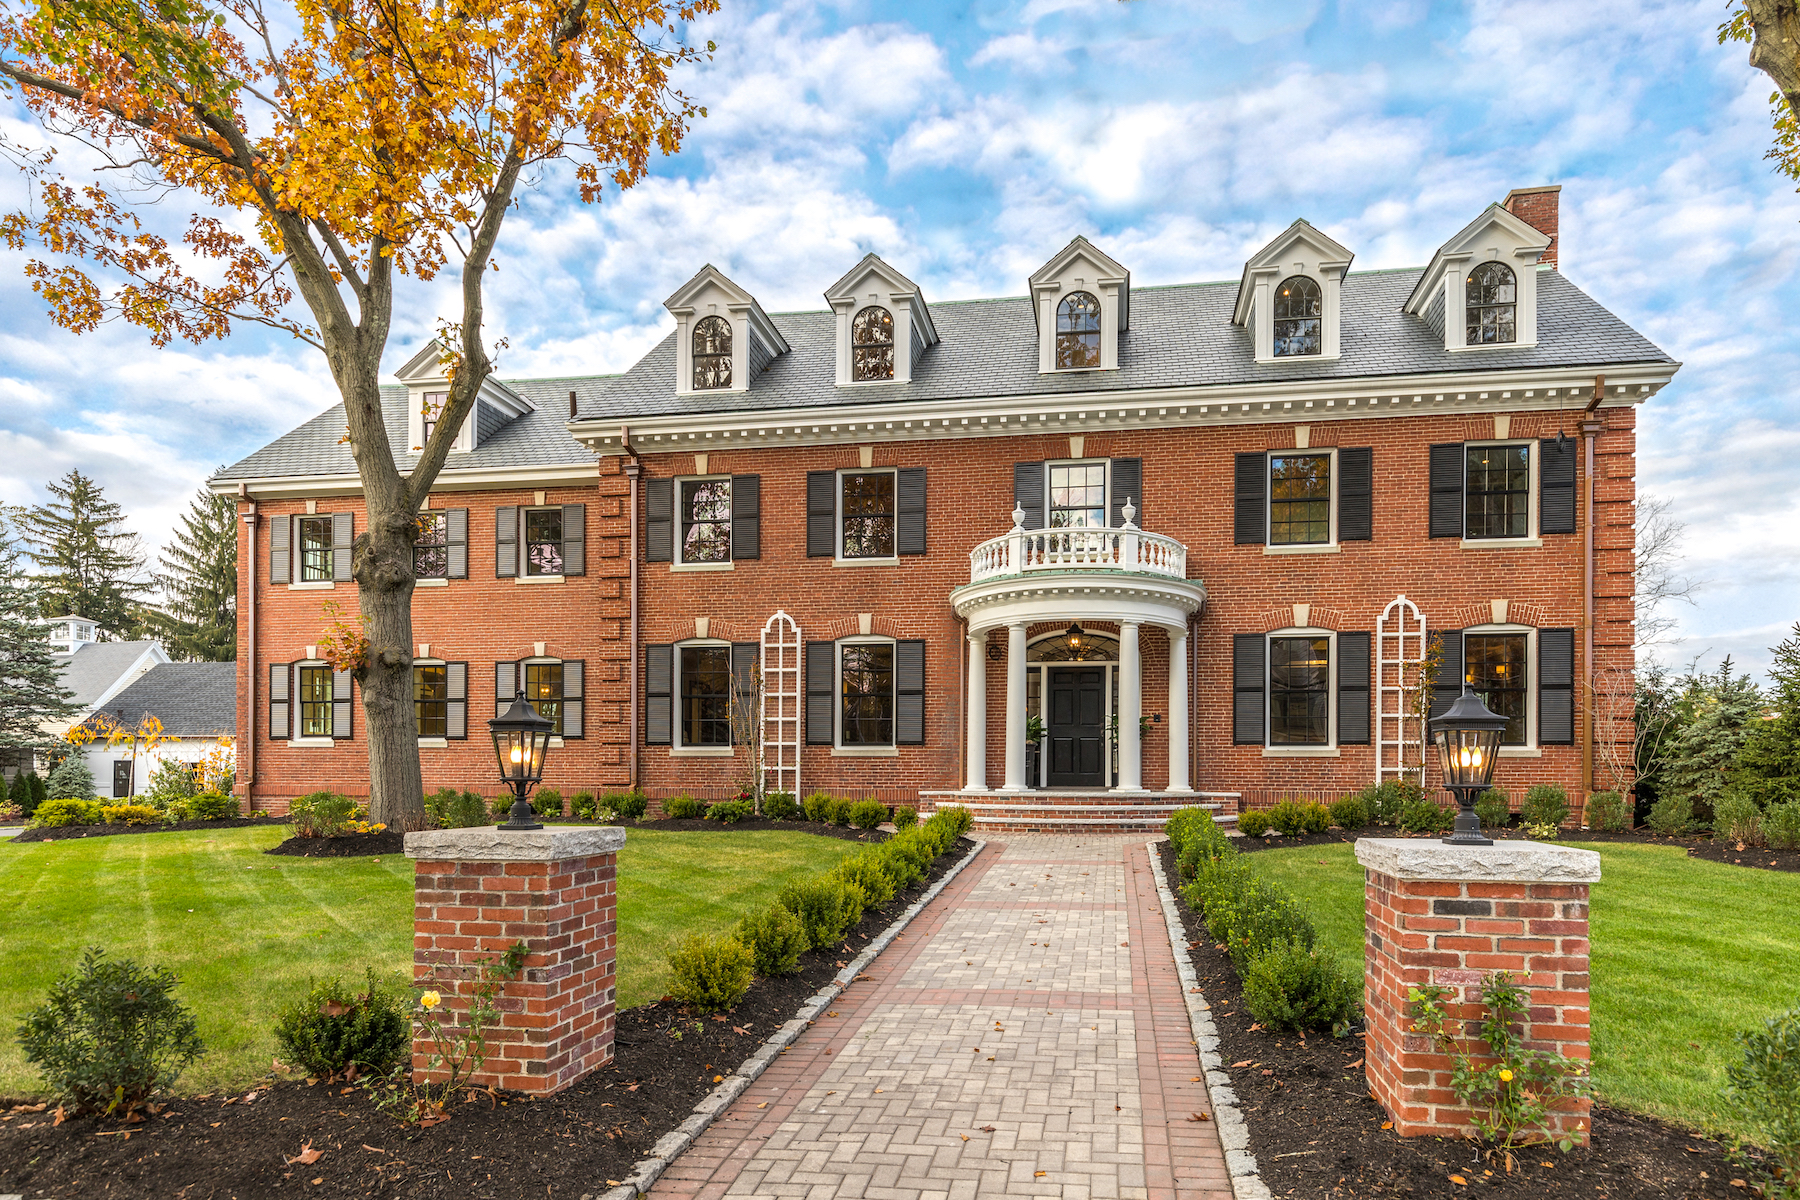 Single Family Homes for Active at Restored To Its Former Grandeur And Renovated To Modern Splendor 9 Grove Street Winchester, Massachusetts 01890 United States